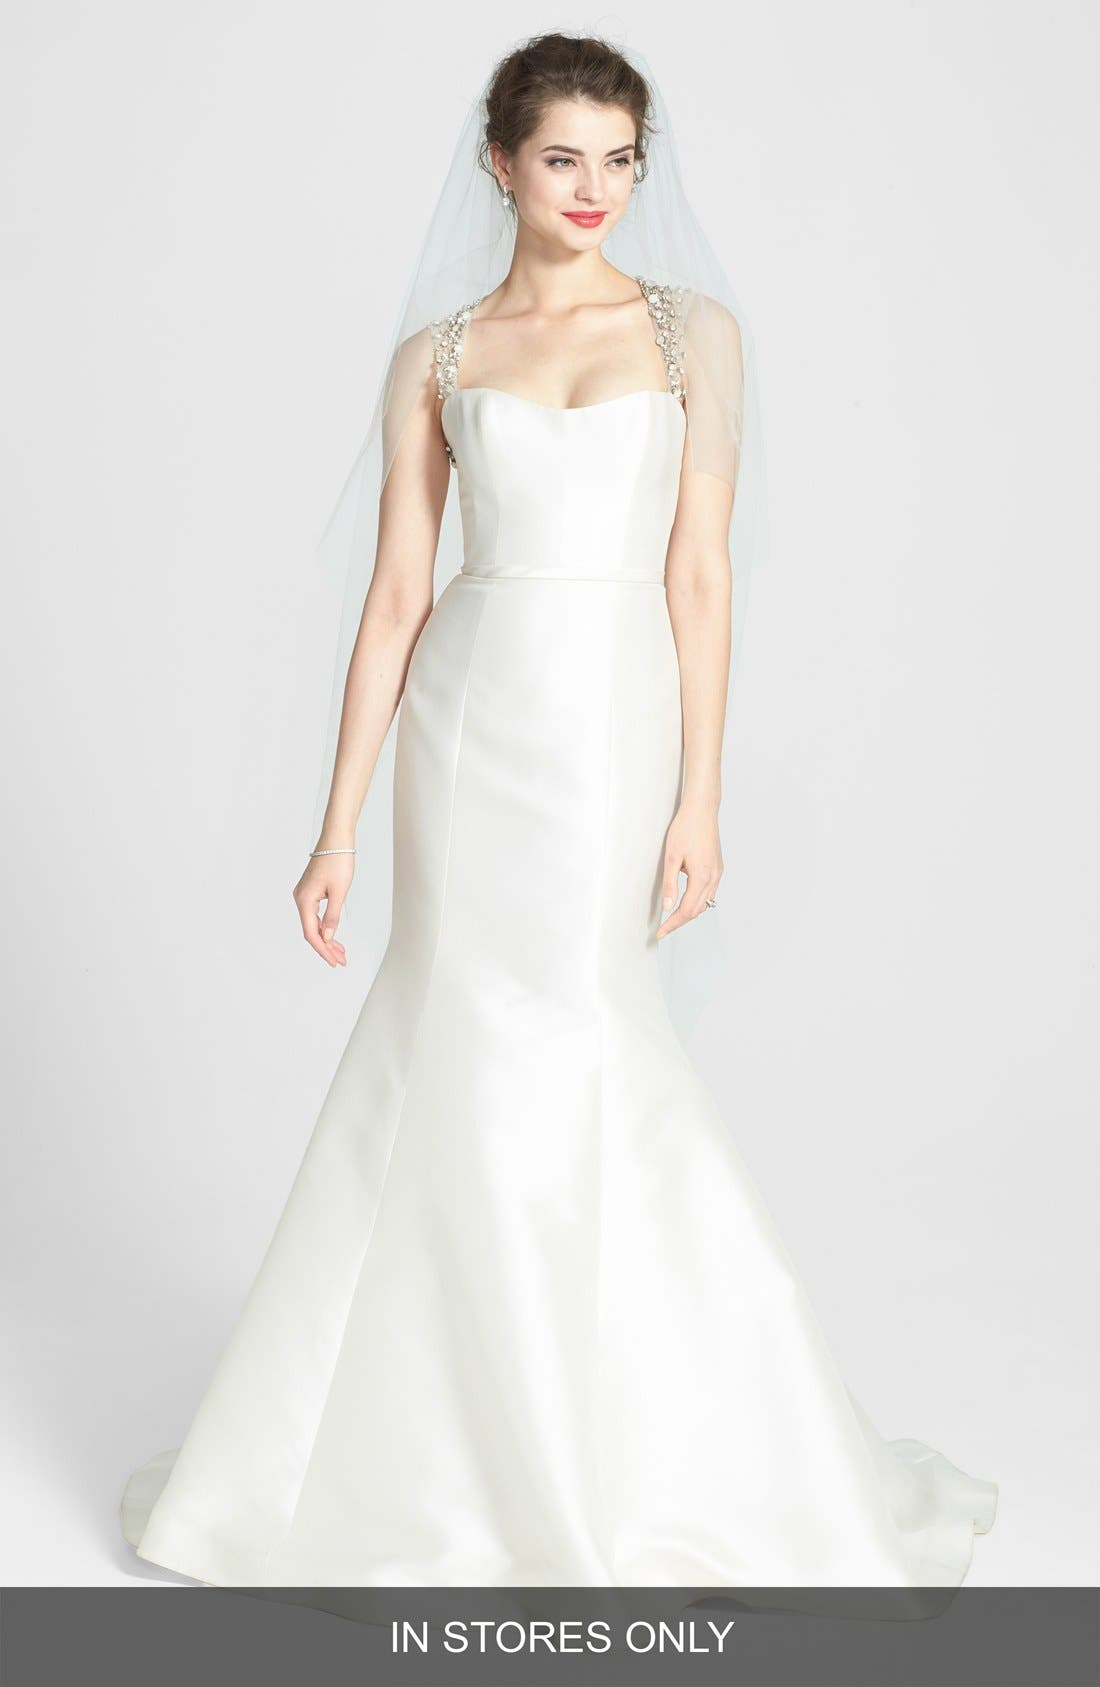 Main Image - Amsale 'Lenox' Beaded Illusion Strap Silk Blend Trumpet Dress (In Stores Only)